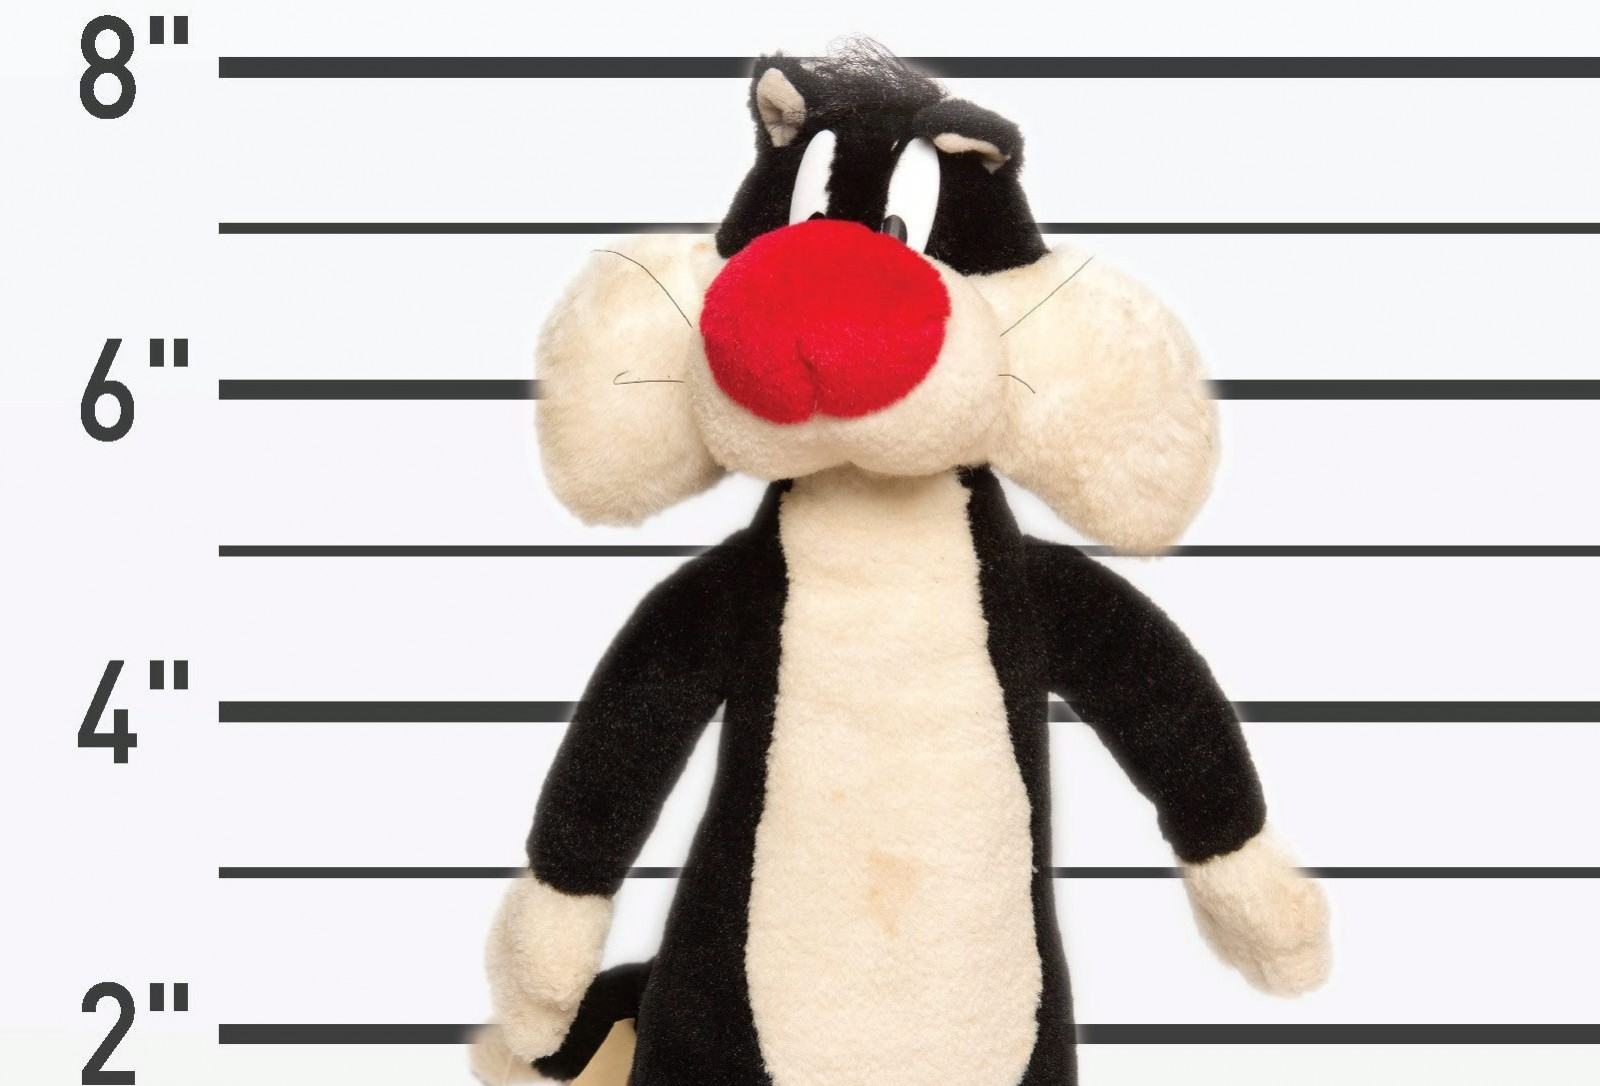 Recognise anyone in this line up?: Help these cuddly toys find their way home!